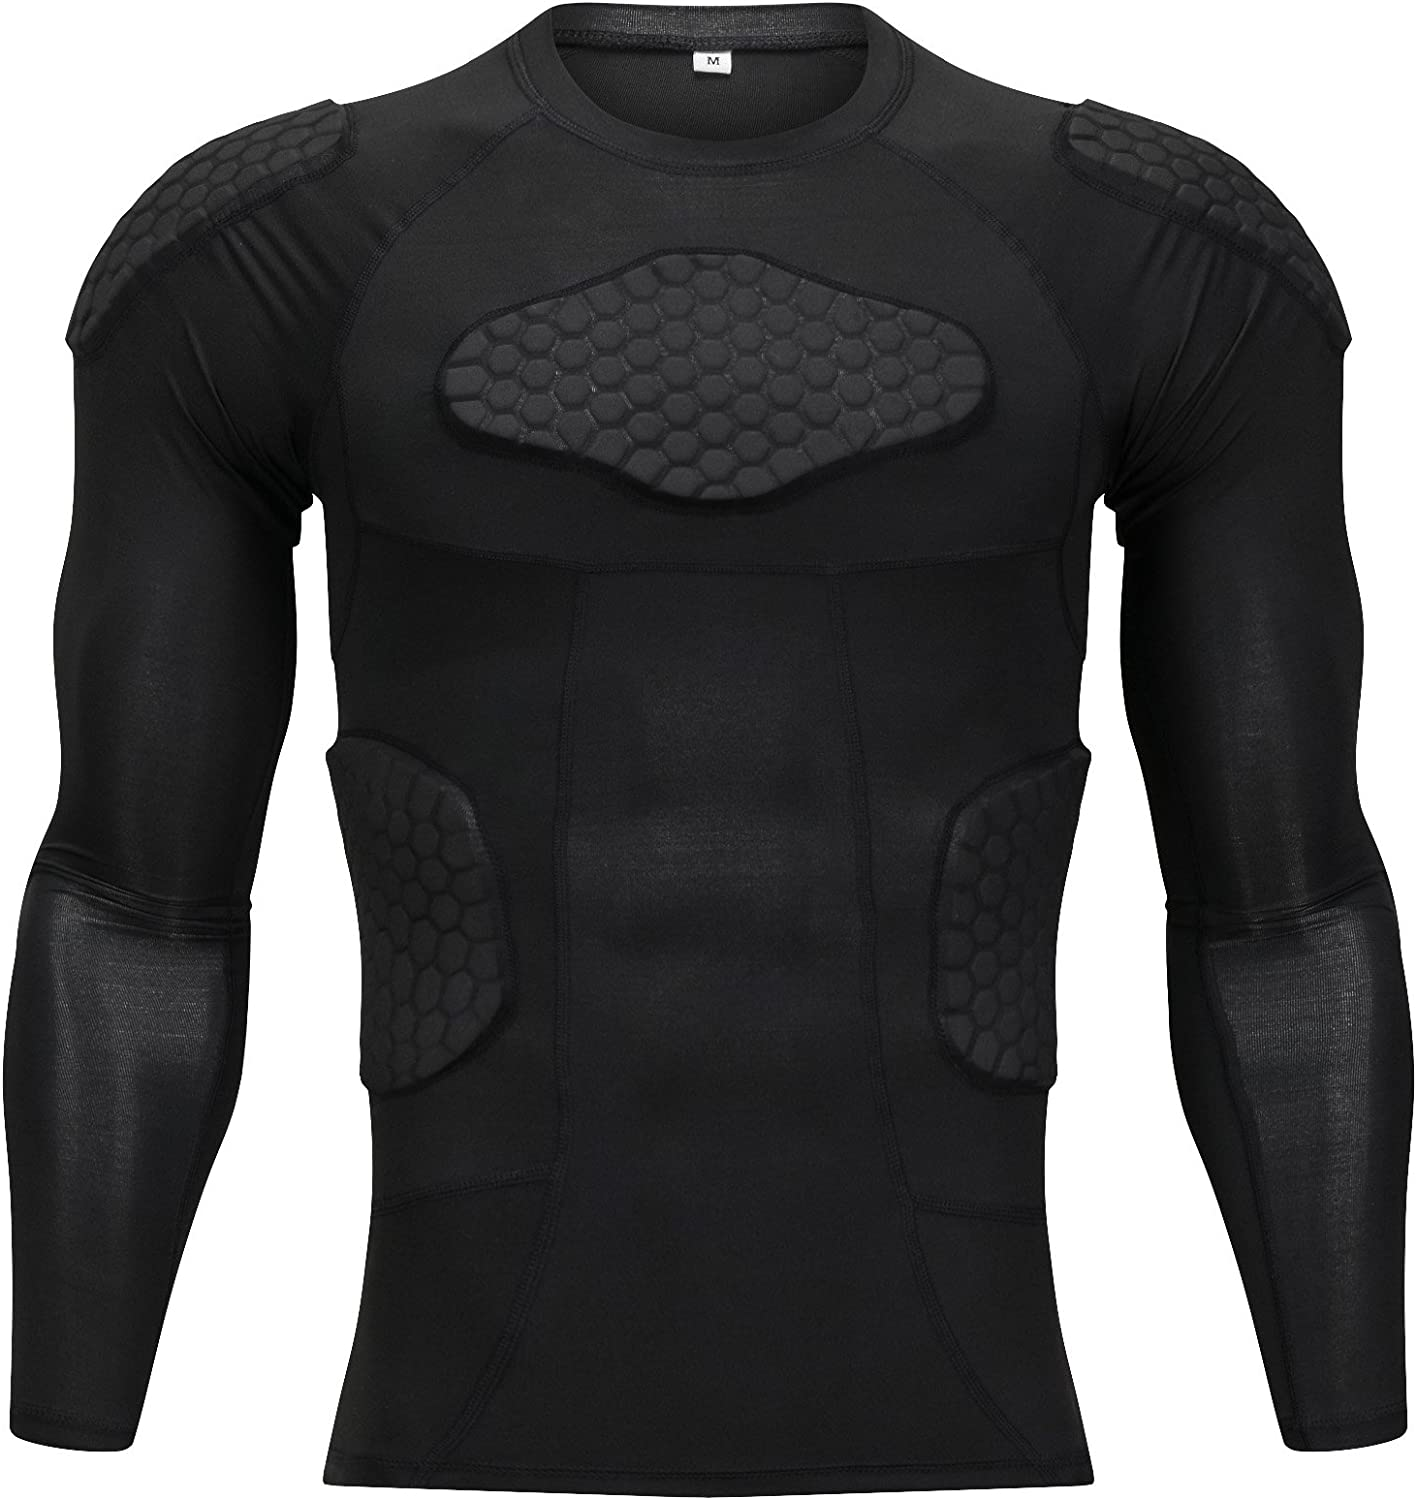 TUOY Classic Padded Compression Shirt - Long Sleeve Padded Protective Shirt (Black): Clothing